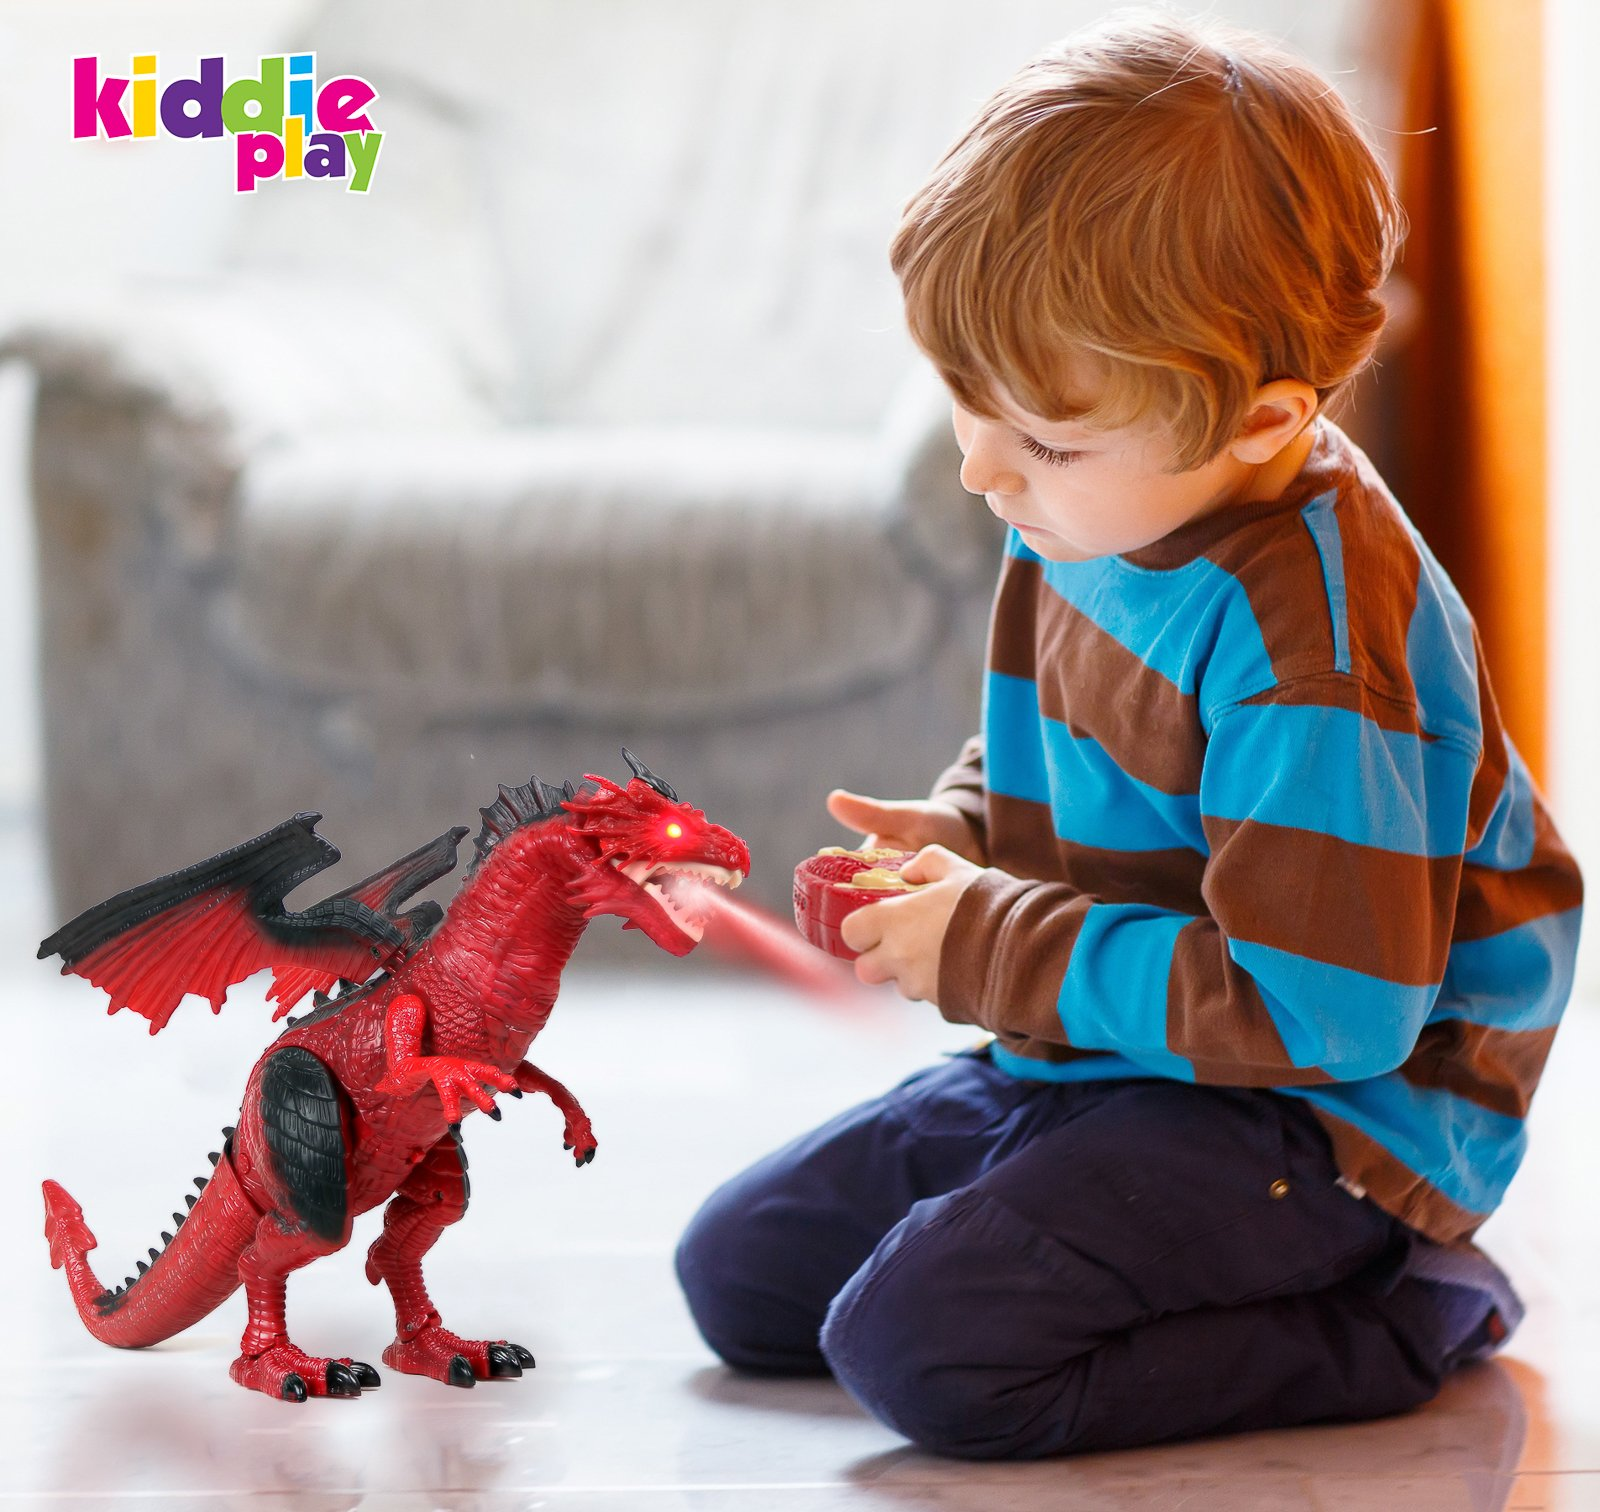 Kiddie Play Remote Control Dinosaur Toy Smoke Breathing and Walking Dragon with Lights and Sounds        by Kiddie Play (Image #3)